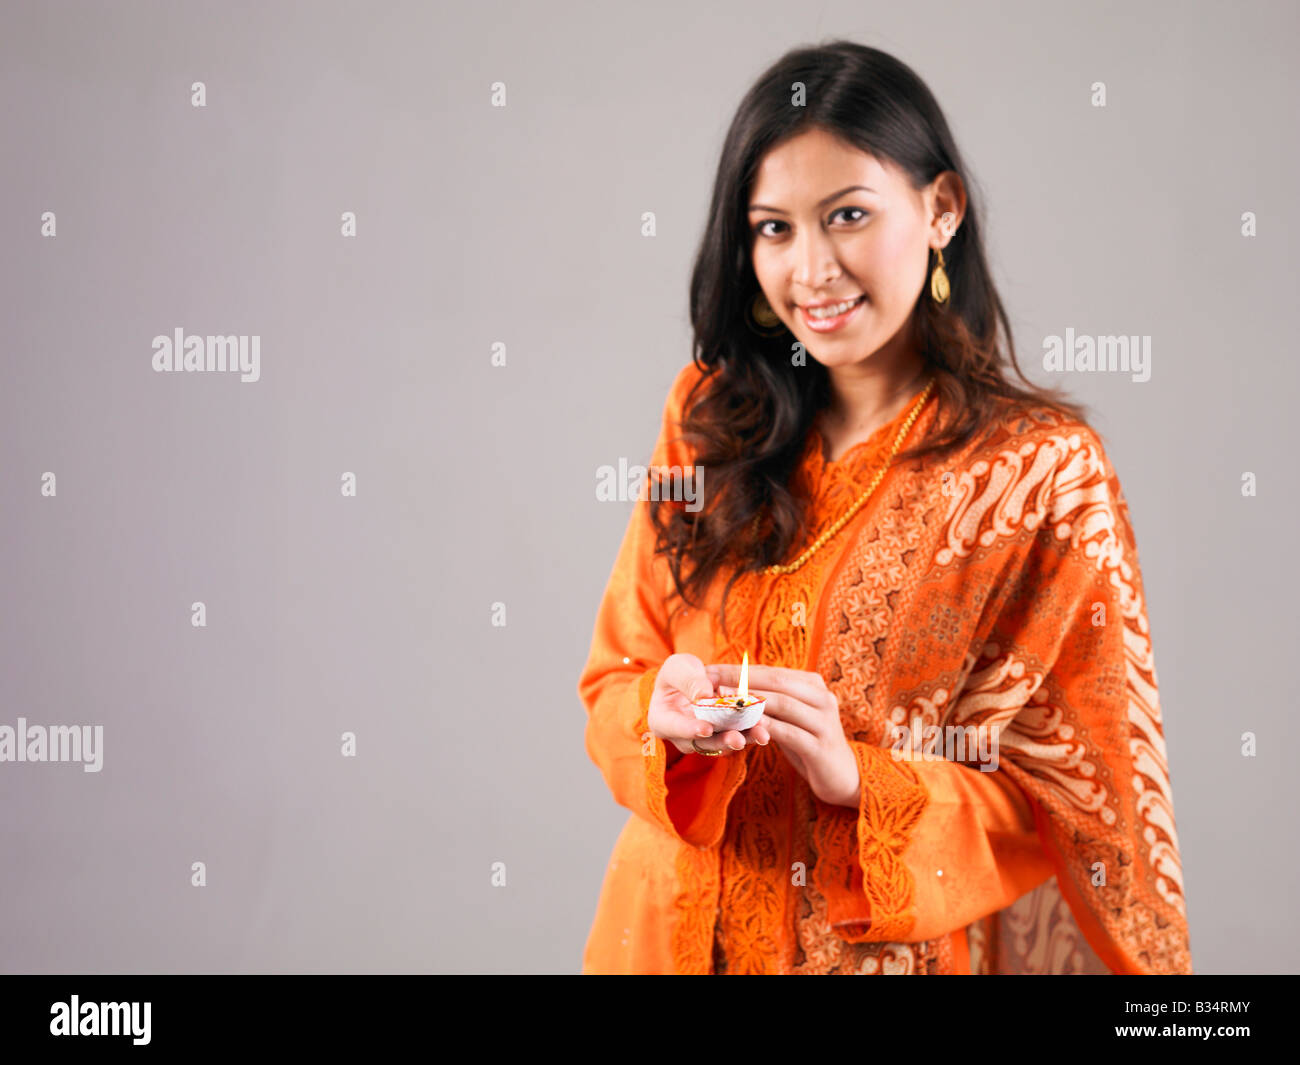 A malay lady holding oil lamp - Stock Image